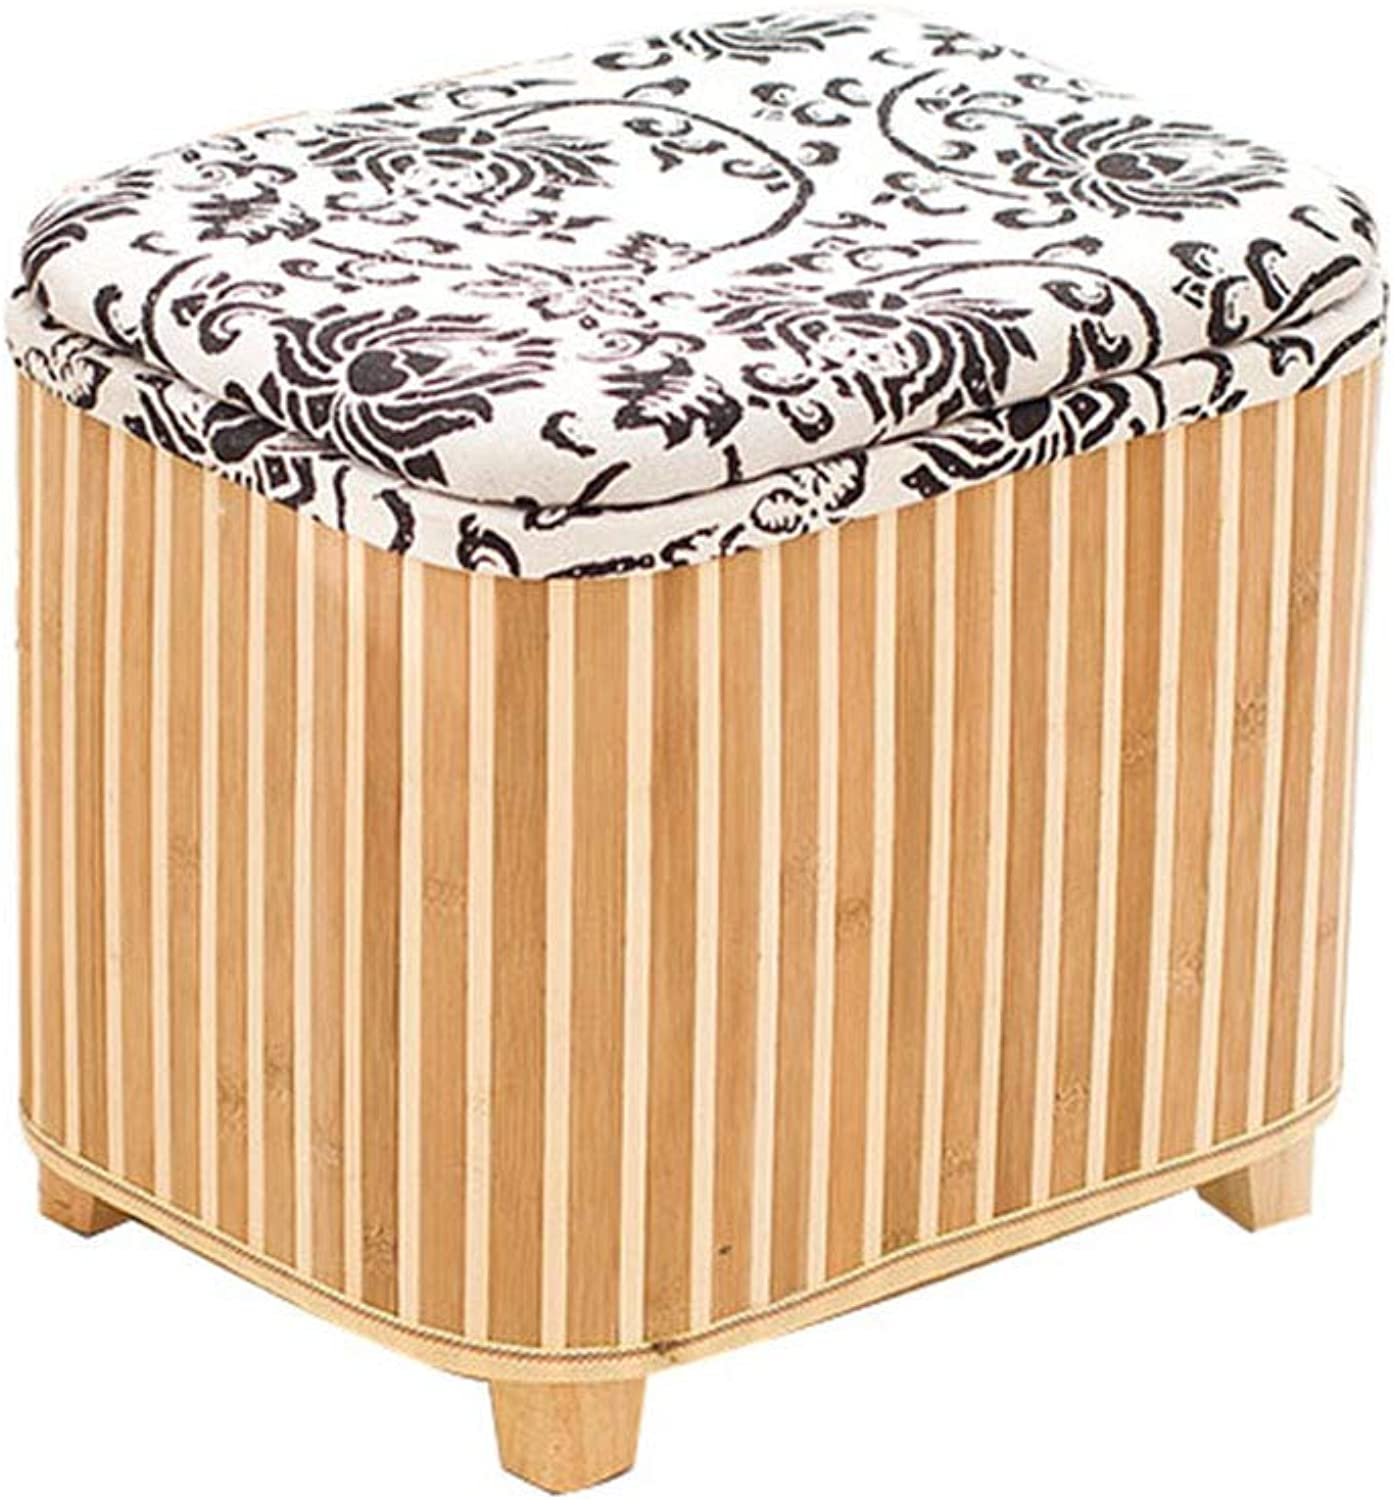 Storage Stool shoes Bench Bamboo Rectangular Multi-Function Makeup Stool 2 colors (Pattern   Wood Bamboo Weave)